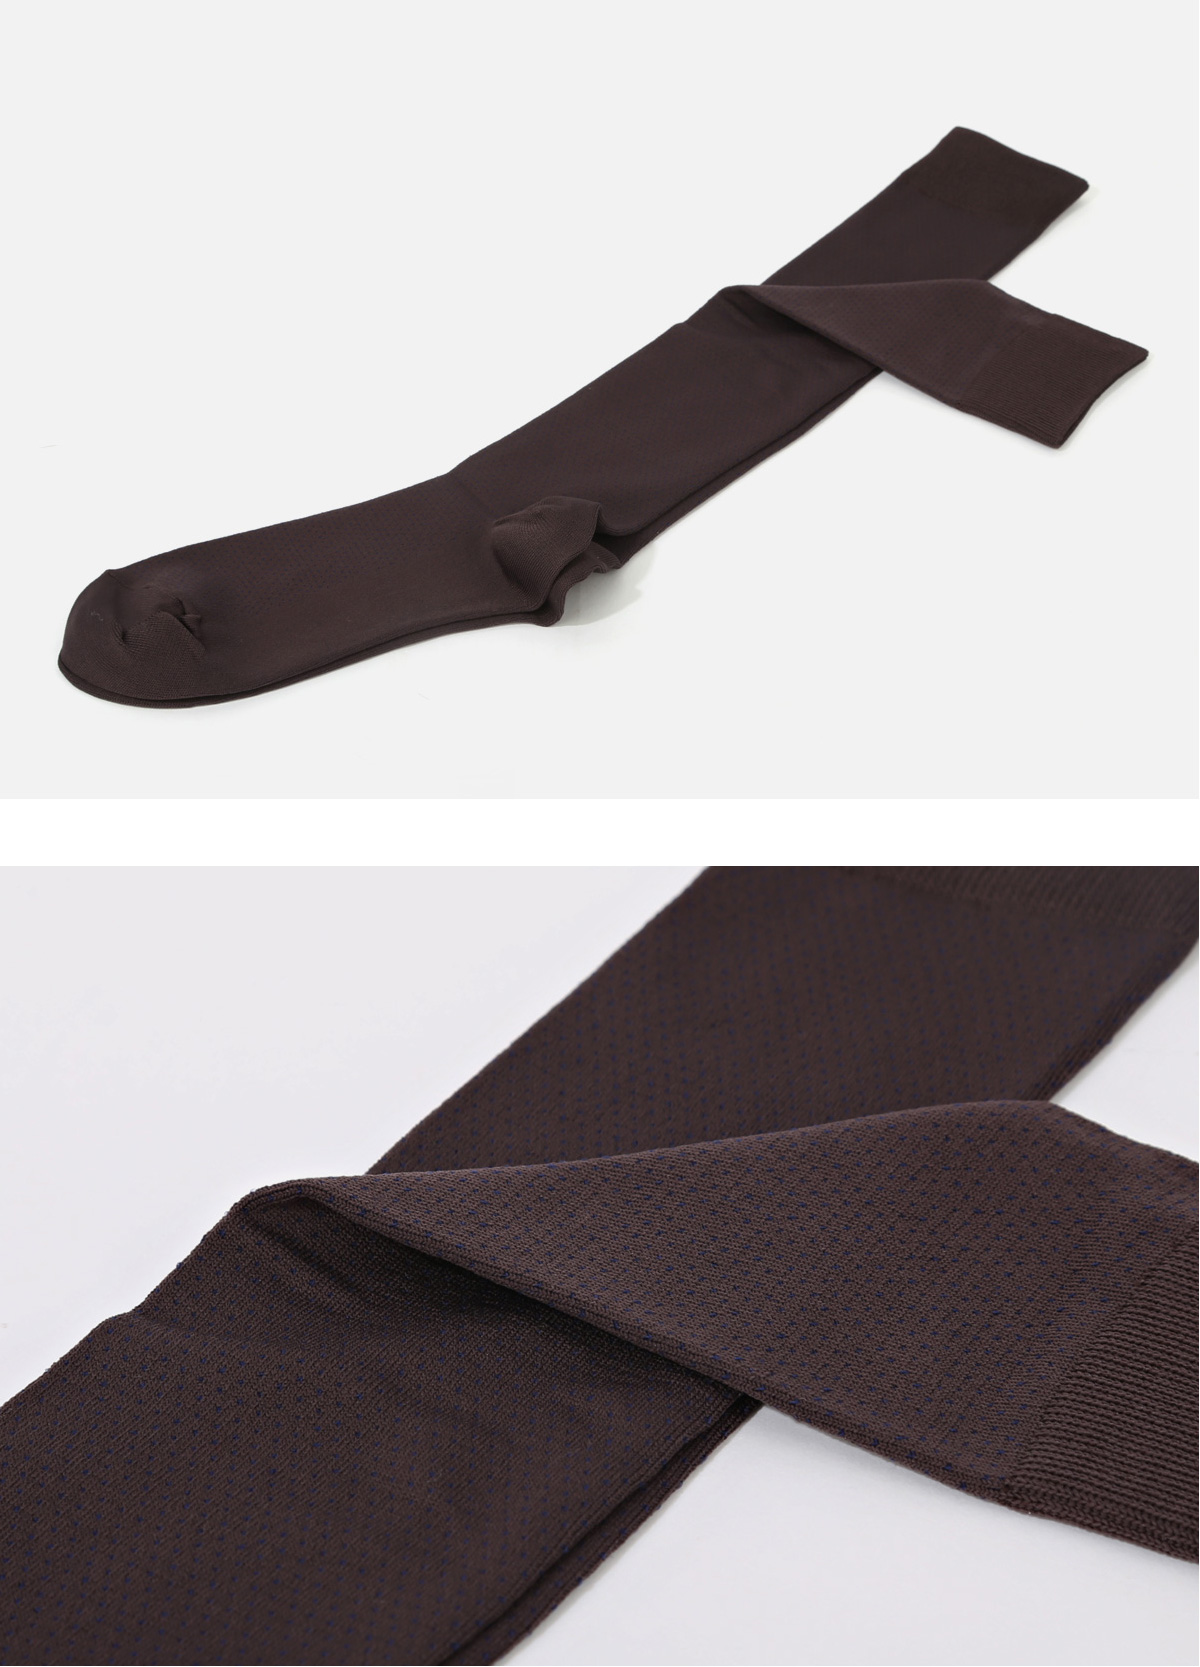 (Classic) EMC-LONGHOSE(D4) Dot Brown socks